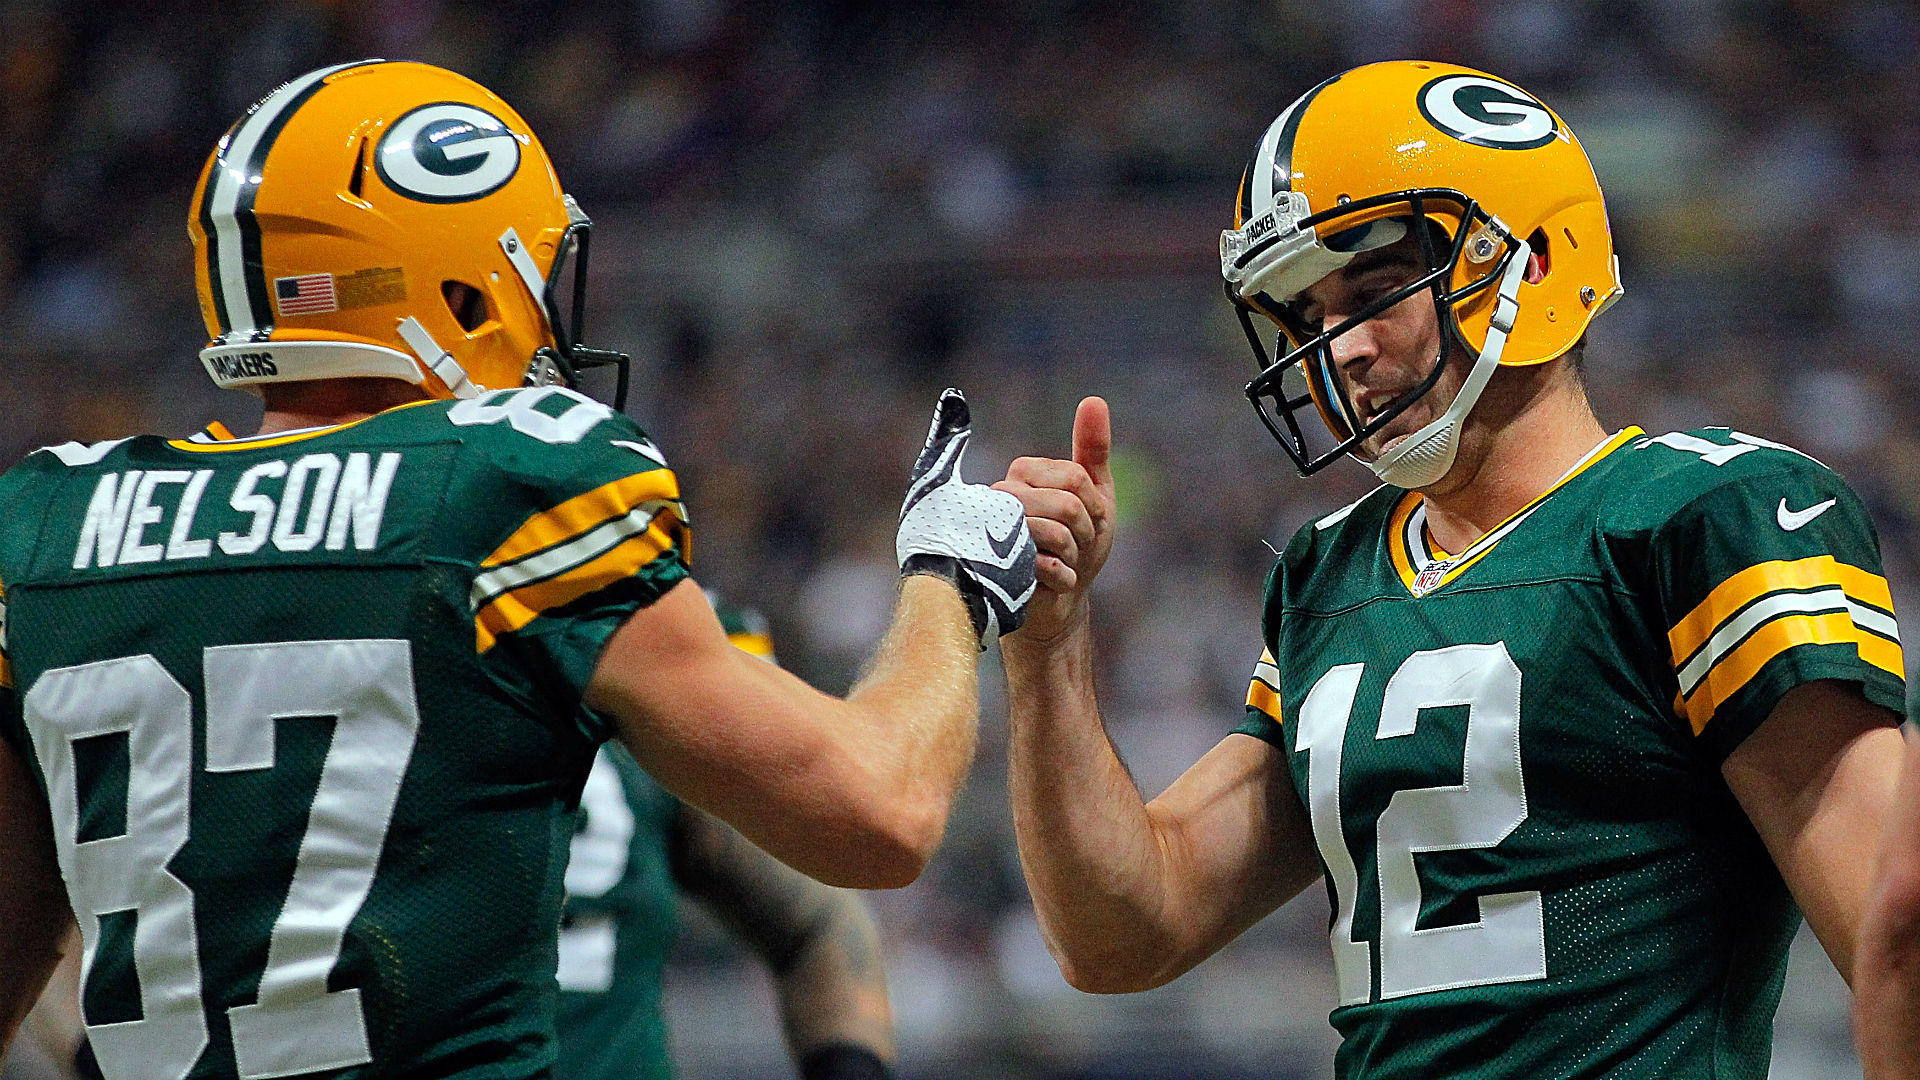 Nfl playoffs preview dallas cowboys at green bay packers other nfl playoffs preview dallas cowboys at green bay packers other sports sporting news voltagebd Image collections